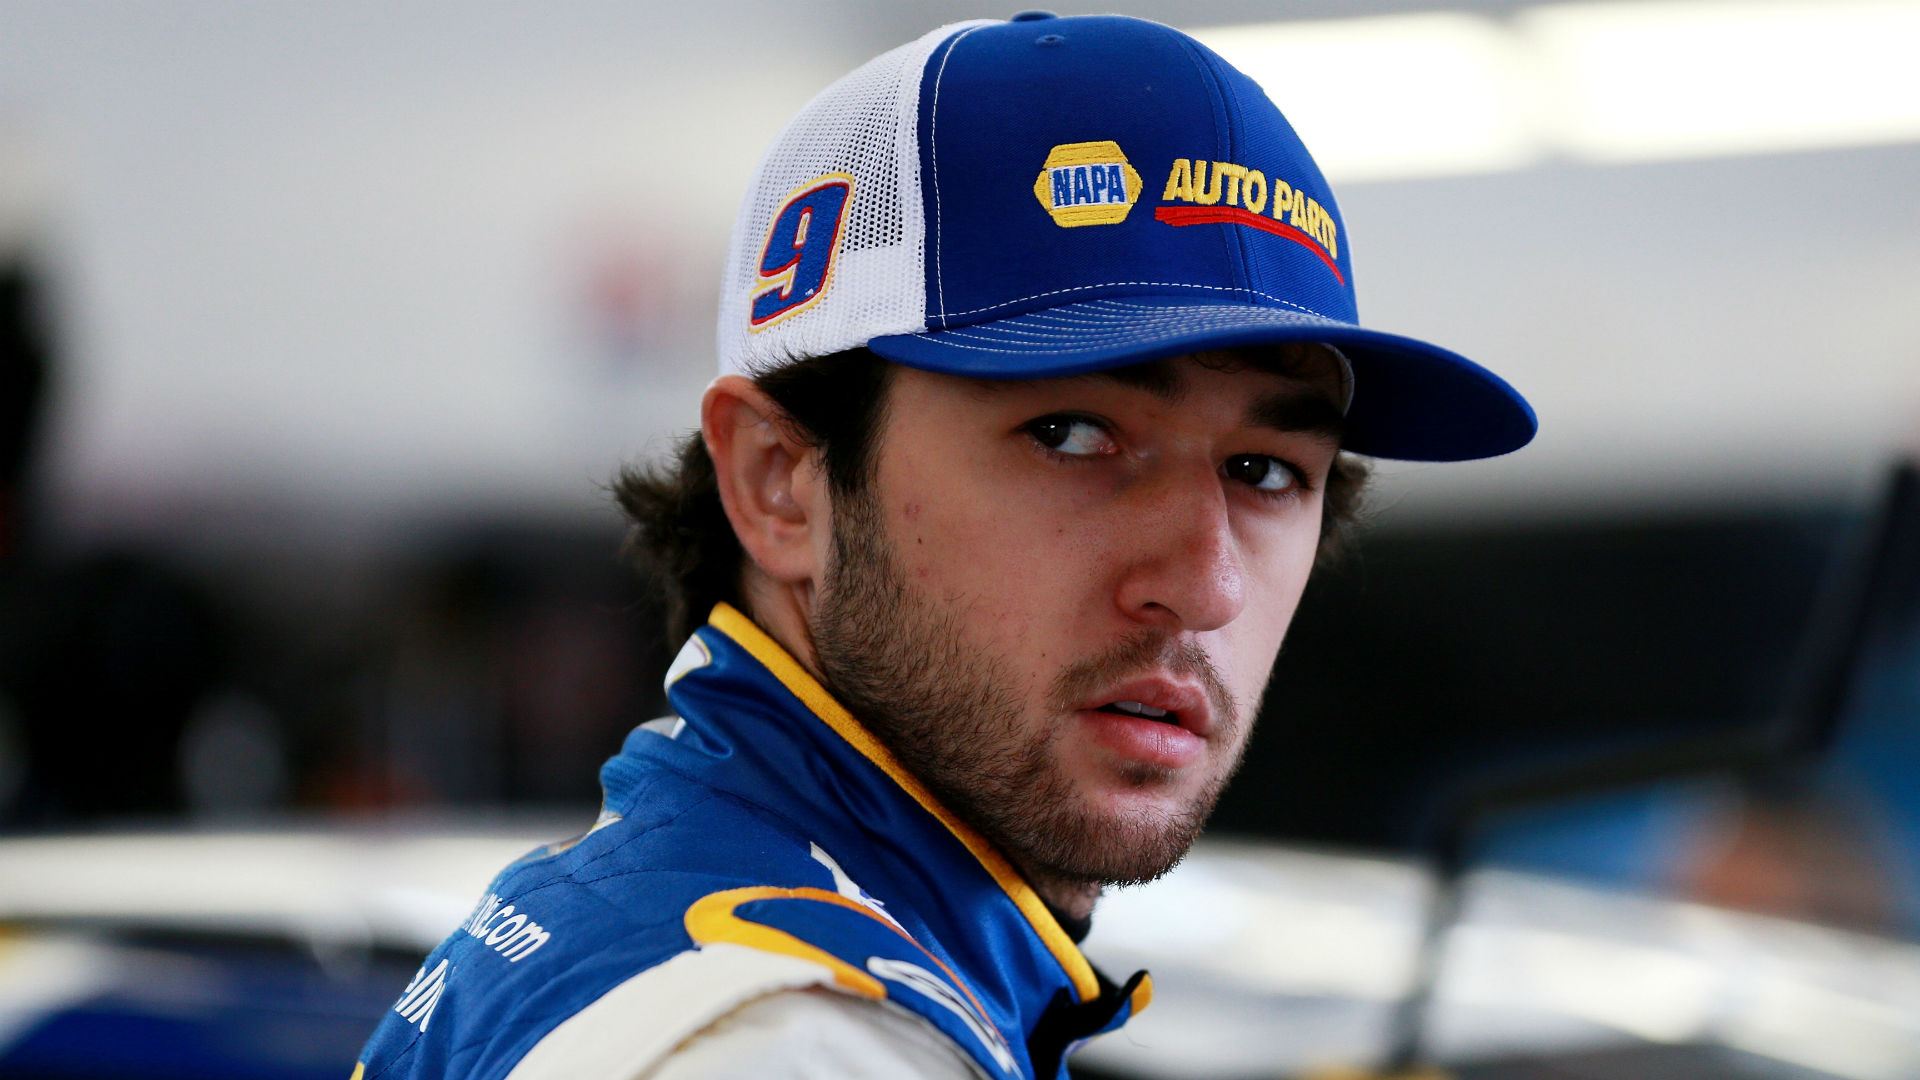 NASCAR starting lineup at Talladega: Chase Elliott wins pole, field set for 1000Bulbs.com 500